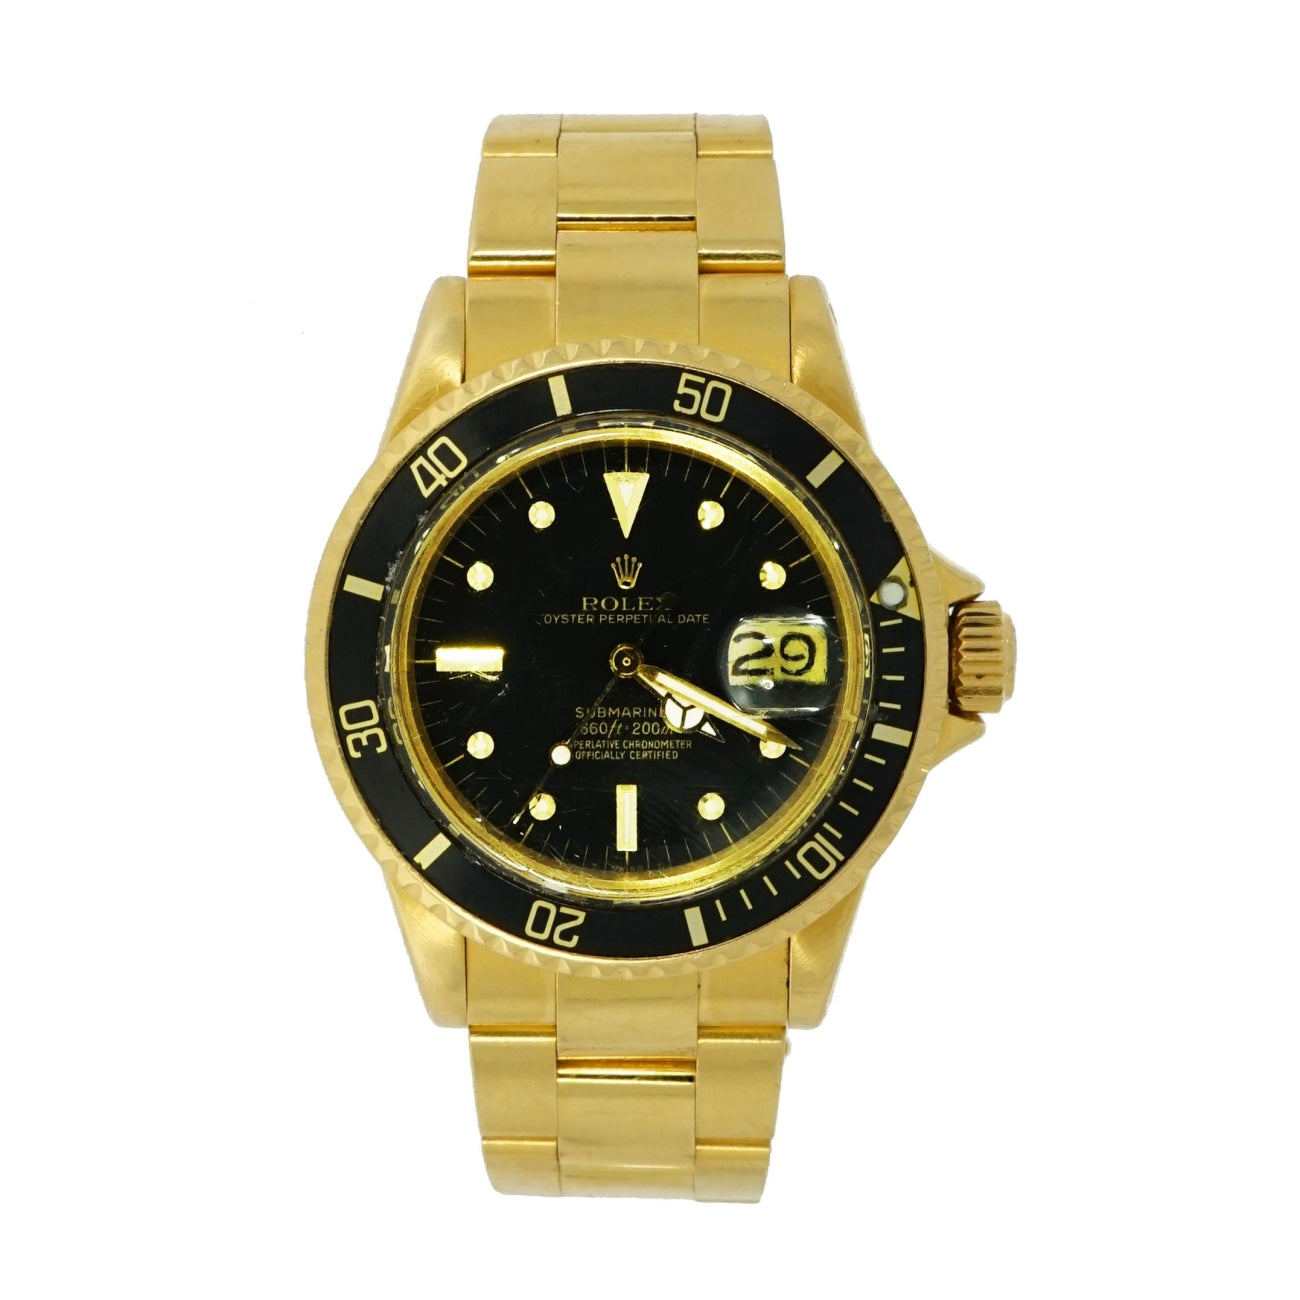 Pre-Owned Rolex Watches - Submariner 1680 | Manfredi Jewels